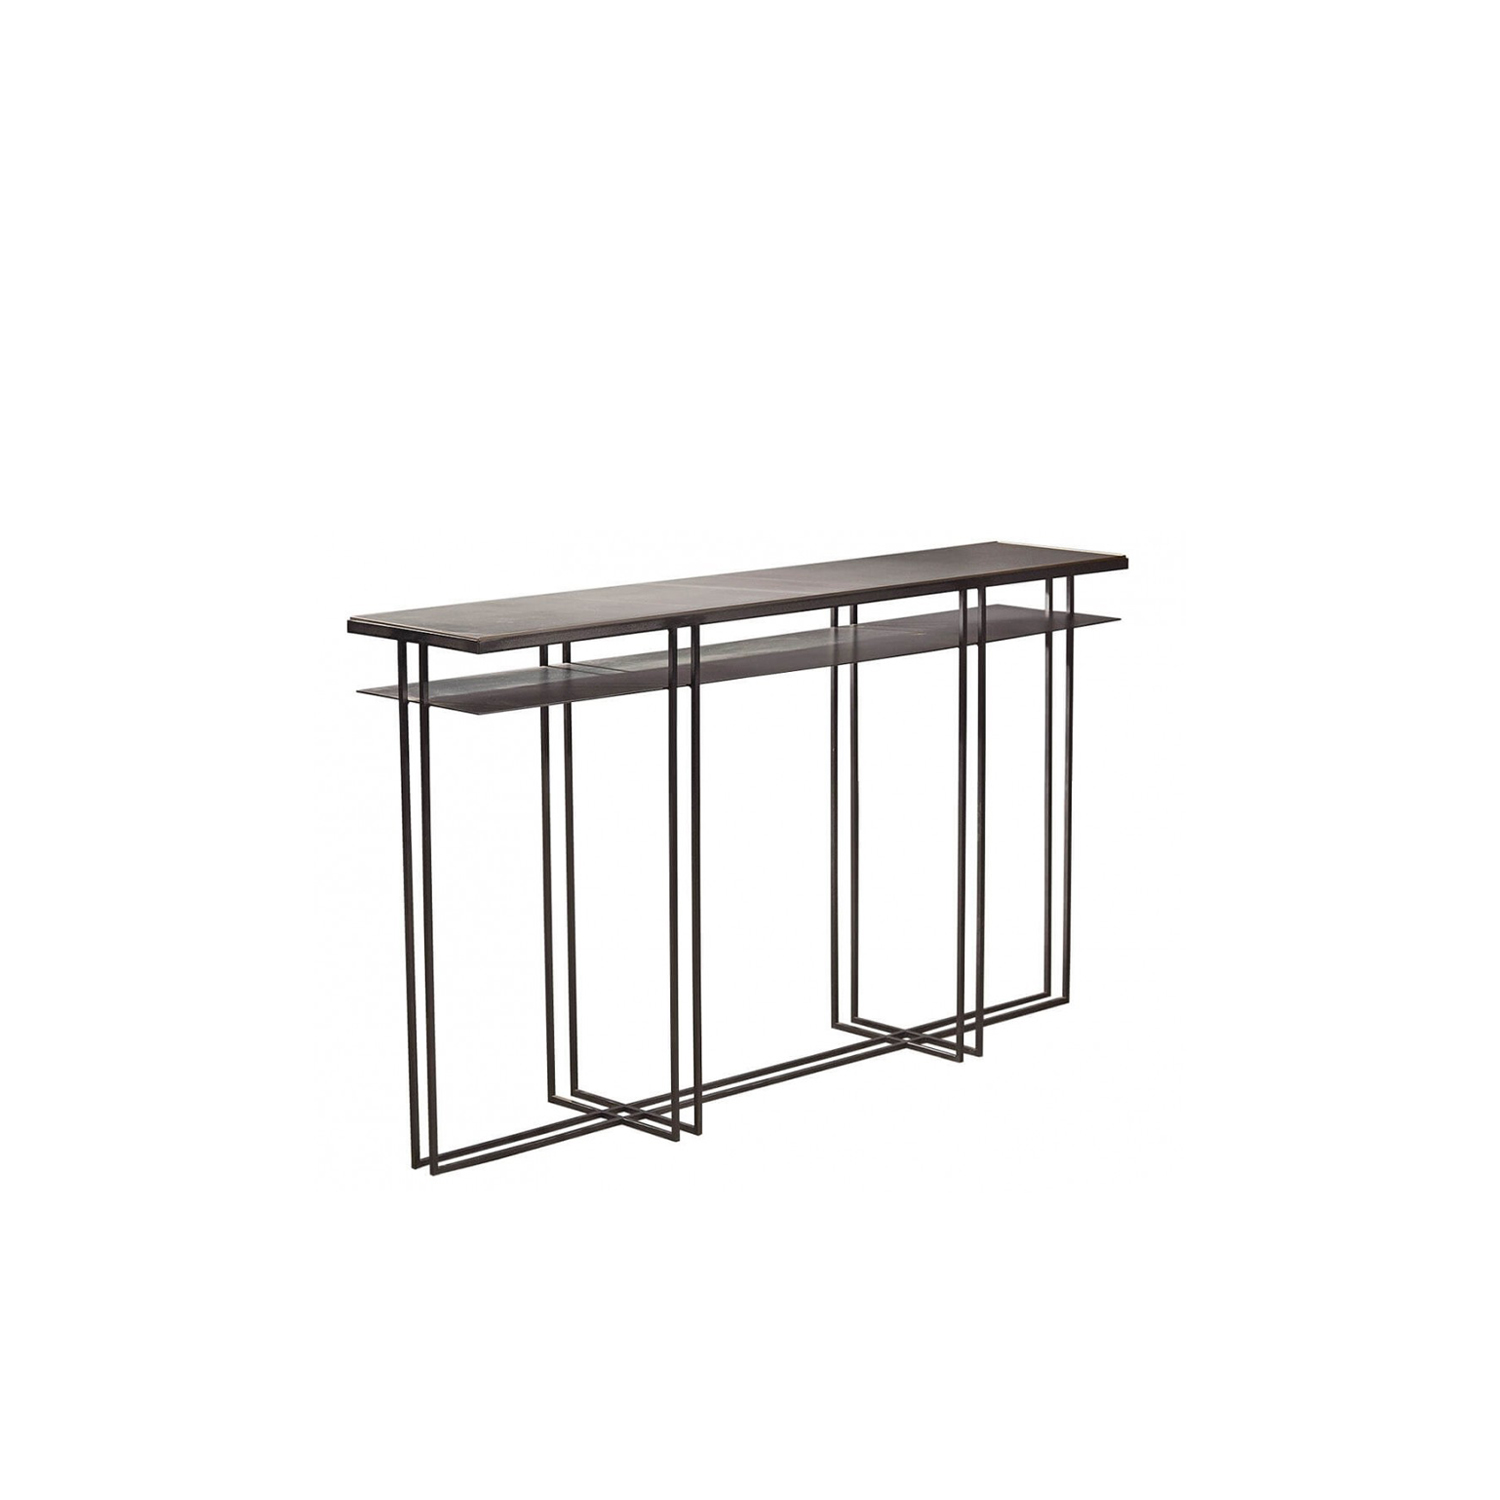 Cross Binate Console - This table fits into almost any room from lounges in the home to meeting rooms at the office. The Cross Binate Consoles slim design means that it can be placed along a wall and is not intrusive. It has a Blackened Steel Frame and a honed Cumbrian Slate Top, with a polished brass trim. This table is hand made and crafted to order in the North of England. Custom sizes and finishes are available.  | Matter of Stuff